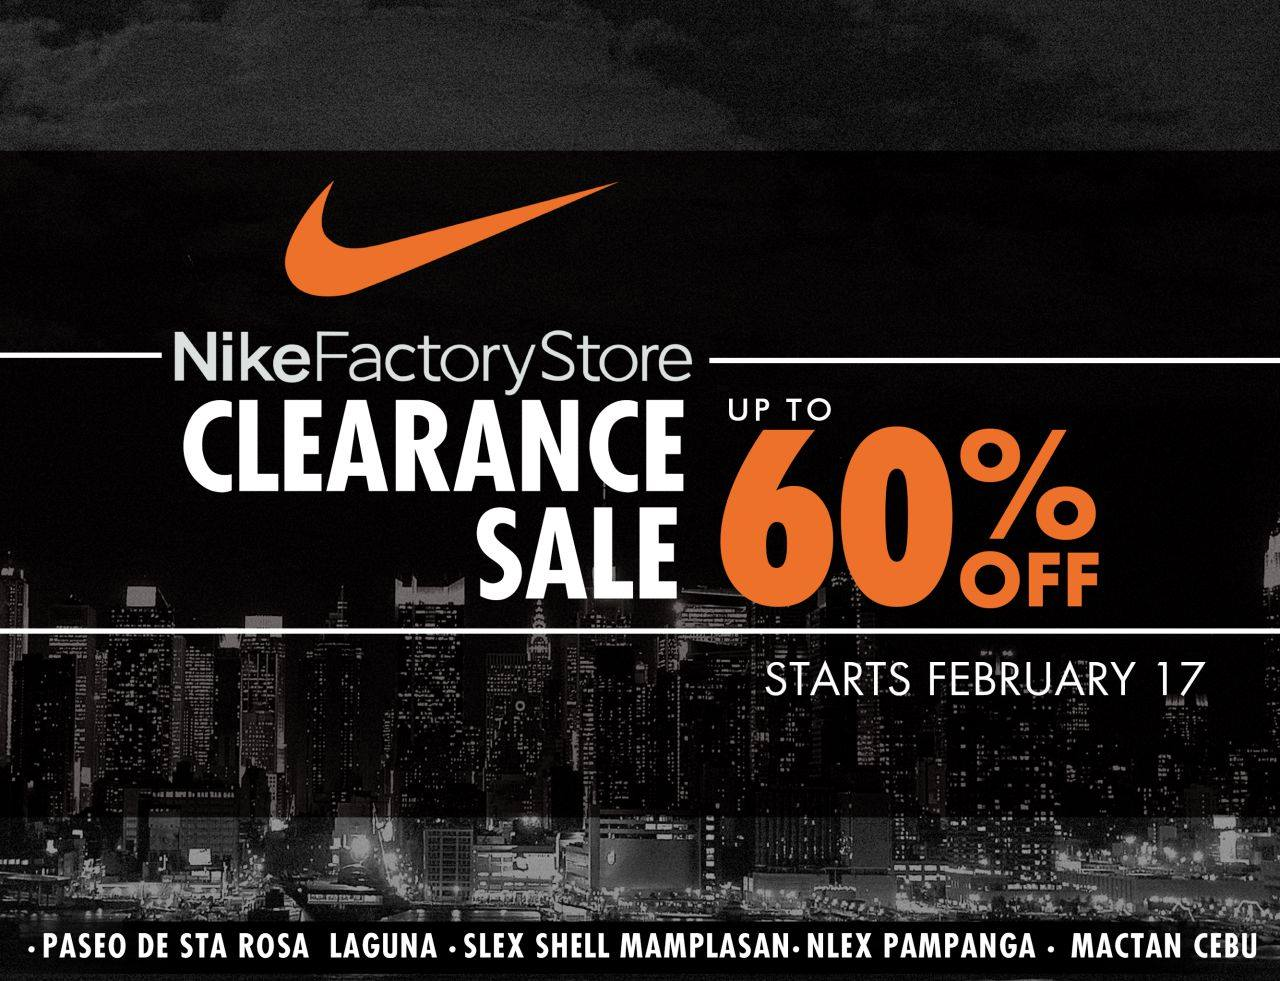 Discounts average $11 off with a Nike Clearance Store promo code or coupon. 10 Nike Clearance Store coupons now on RetailMeNot.